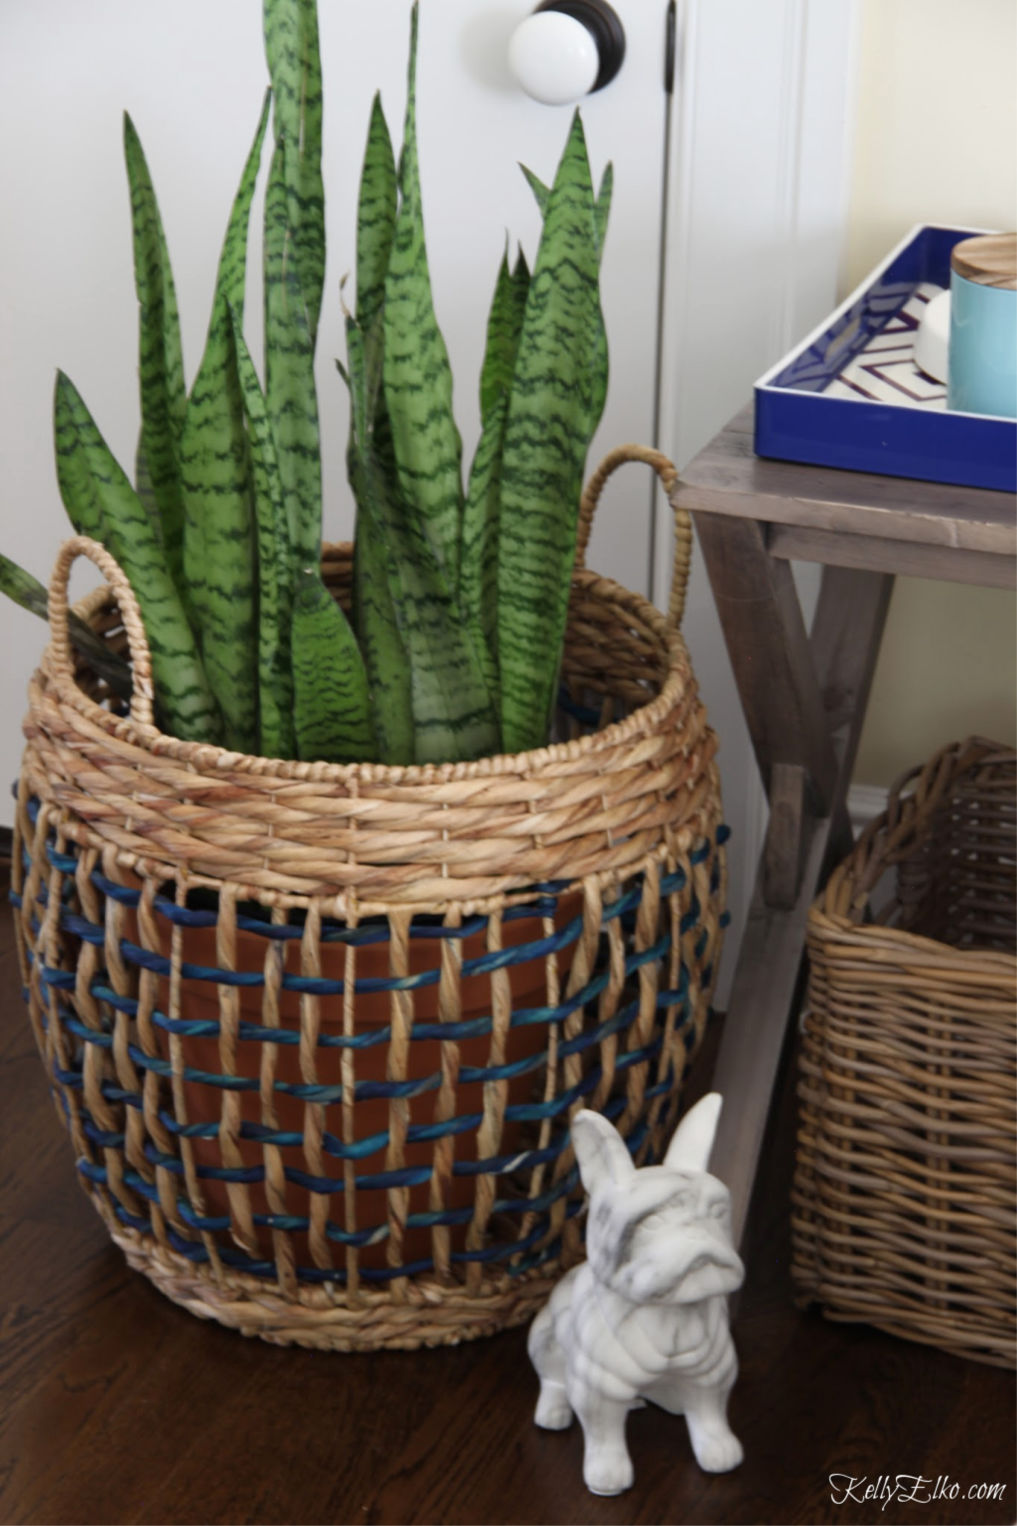 Snake plants are low maintenance and look great in a colorful basket kellyelko.com #plants #houseplants #bohodecor #bedroomdecor #baskets